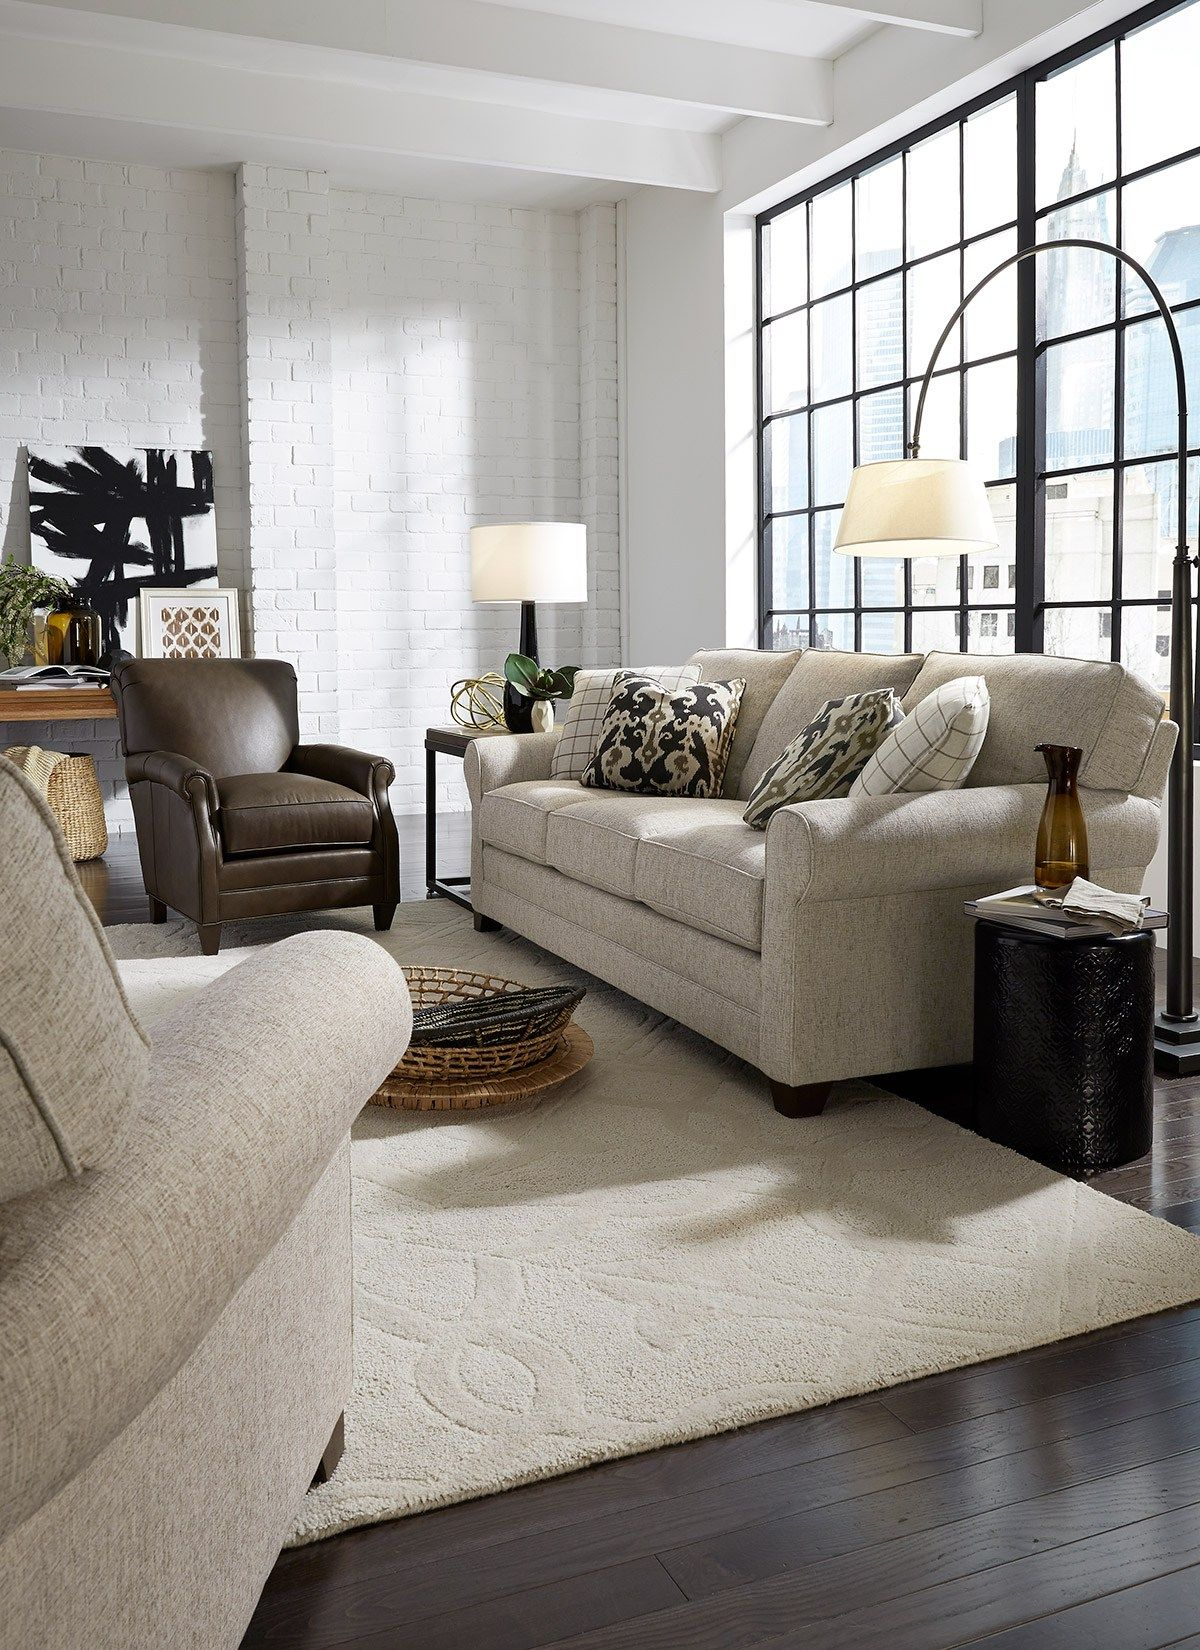 Furniture Shopping Tips: Loft Living Room With Painted White Brick Walls,  Furniture In Warm